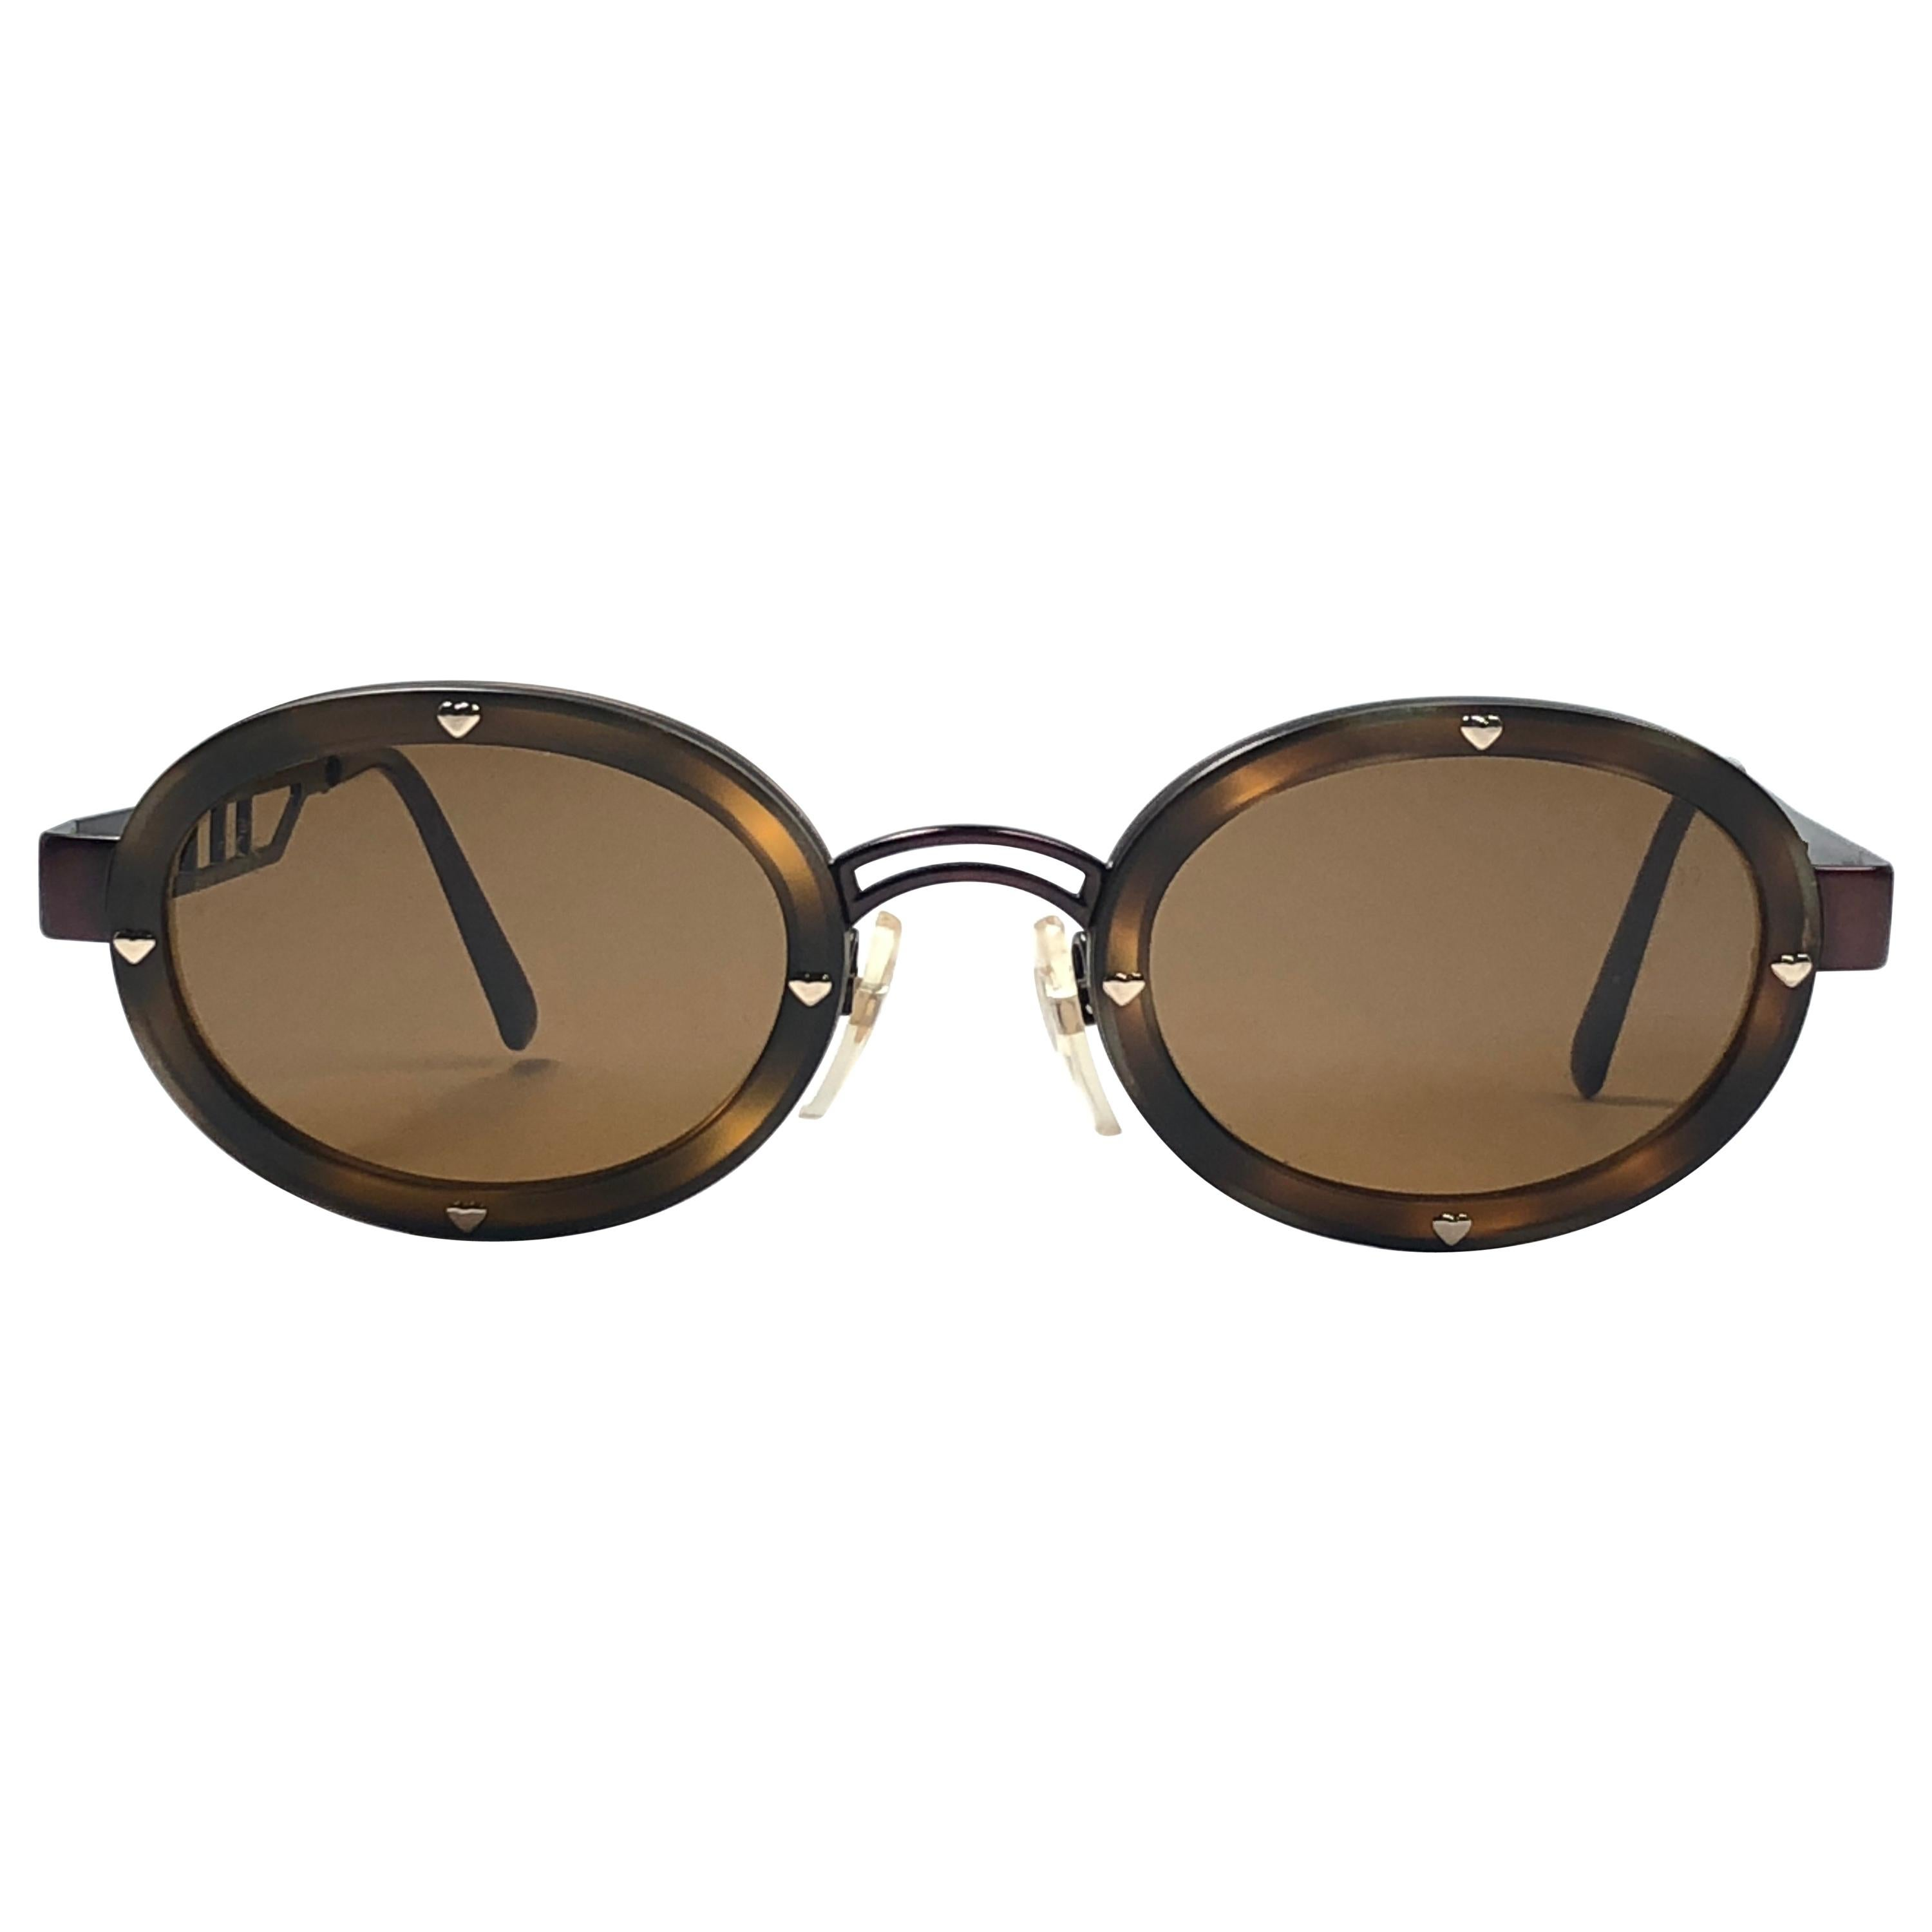 New Vintage Moschino MM3010 S Oval Brown 1990 Sunglasses 1990's